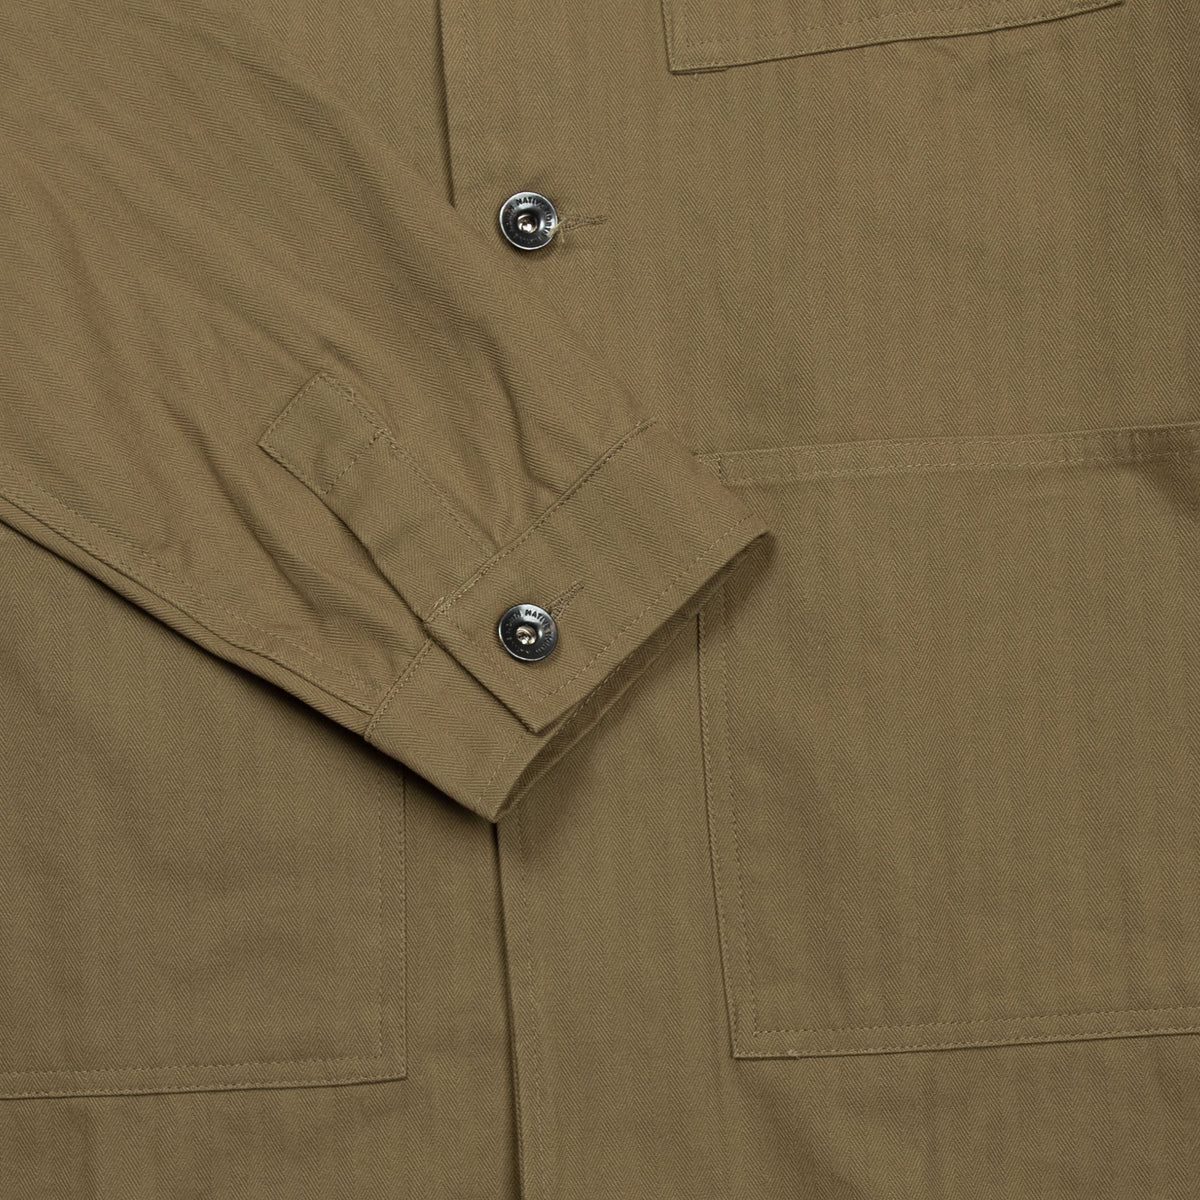 Native North Herringbone Utility Jacket in Green Cuff Detail